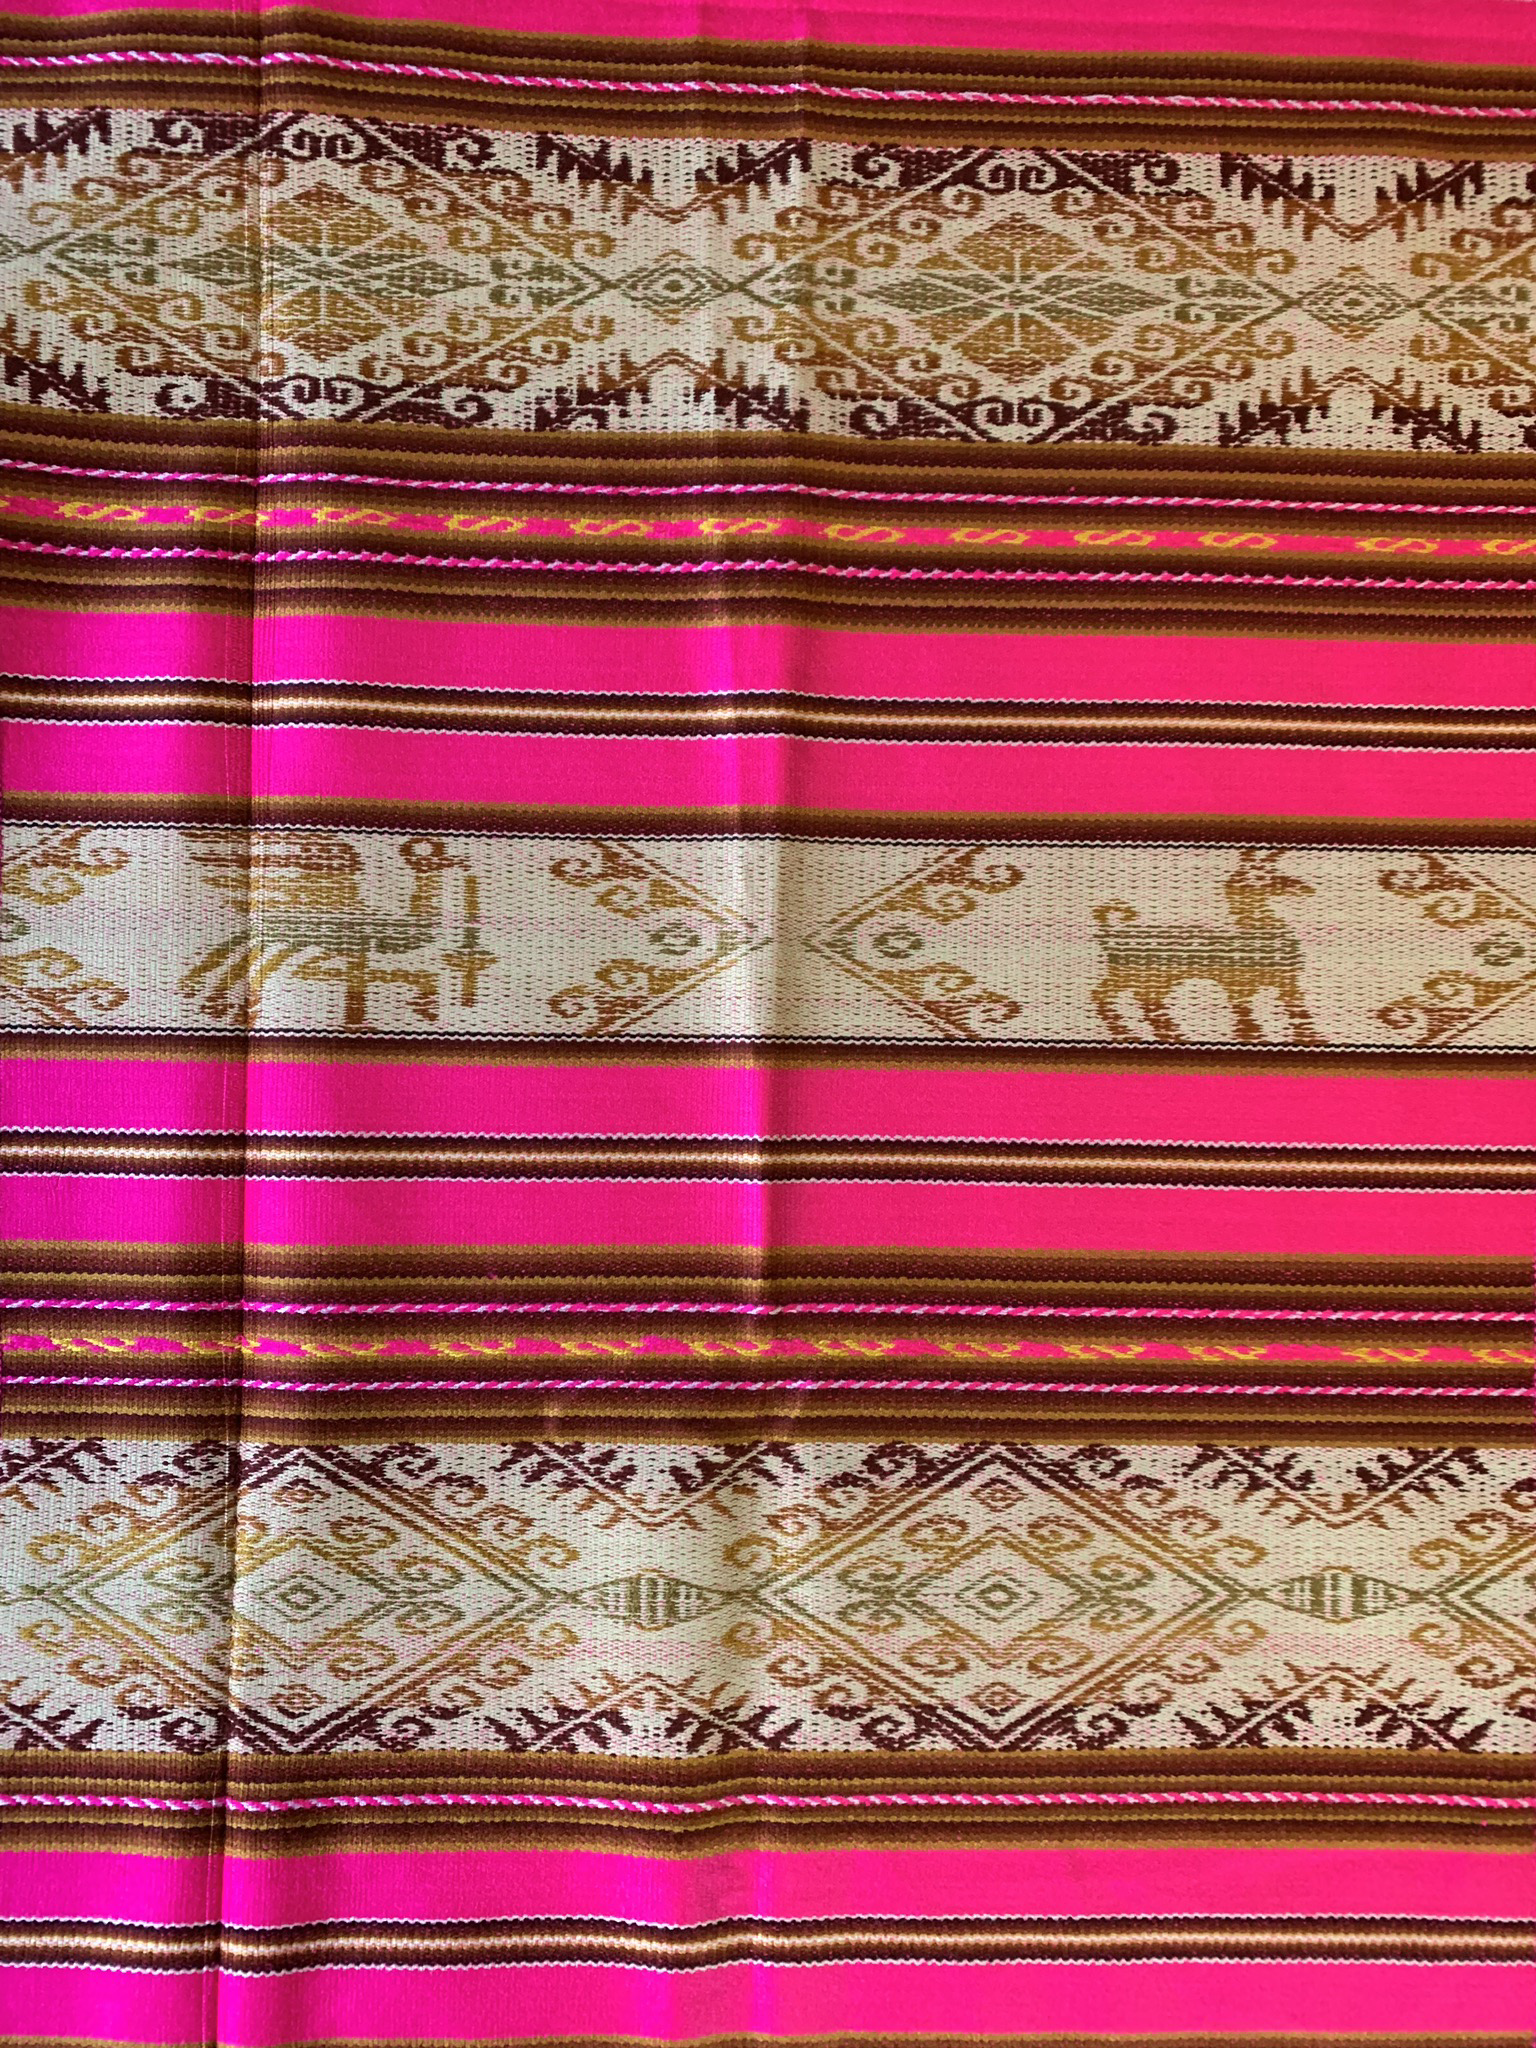 Pink Mexican Table Runner 00094